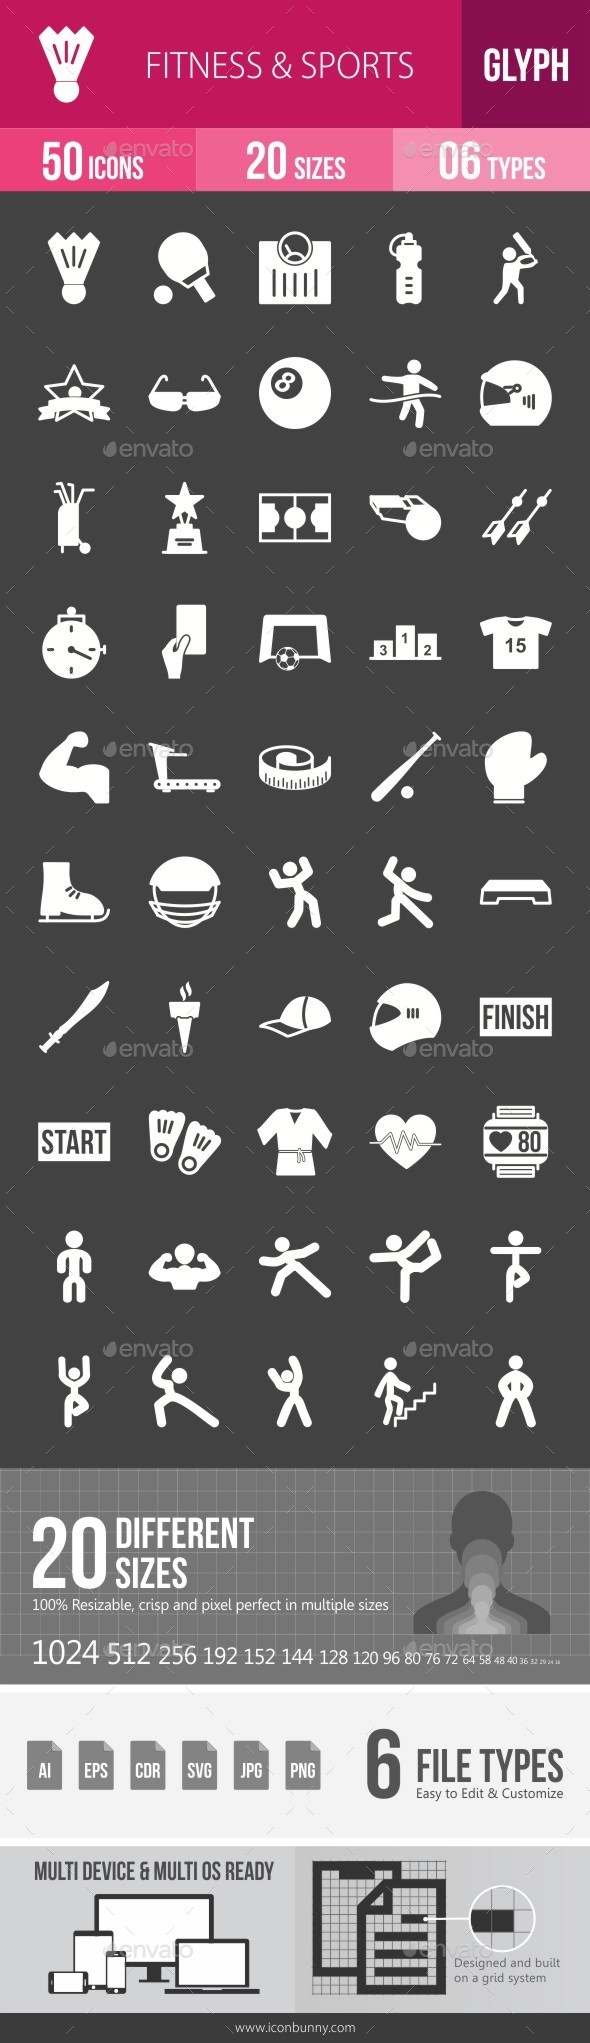 Fitness & Sports Glyph Inverted Icons - Icons